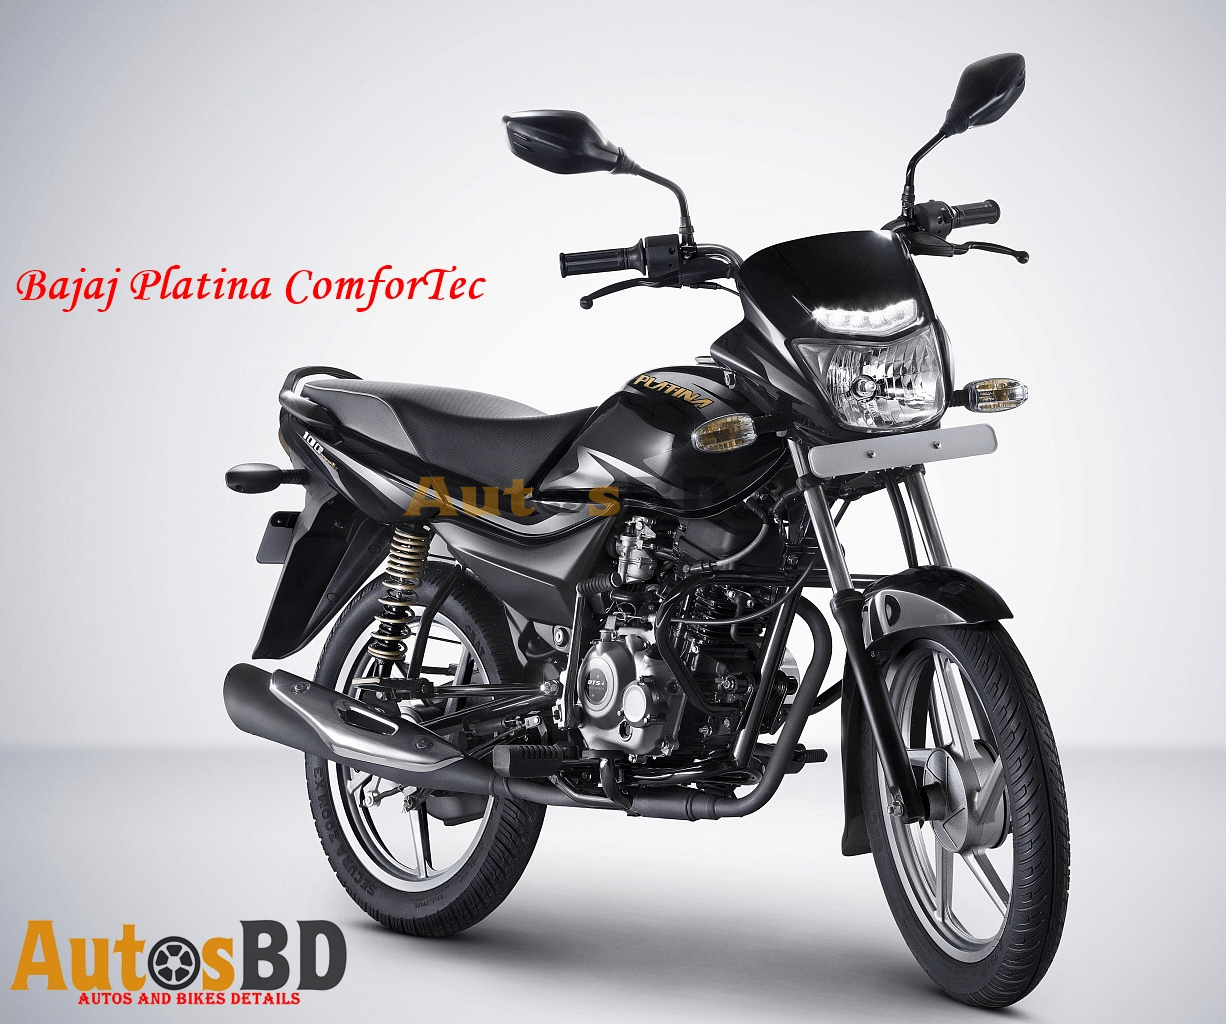 Bajaj Platina 100 ComforTec KS Motorcycle Price in India